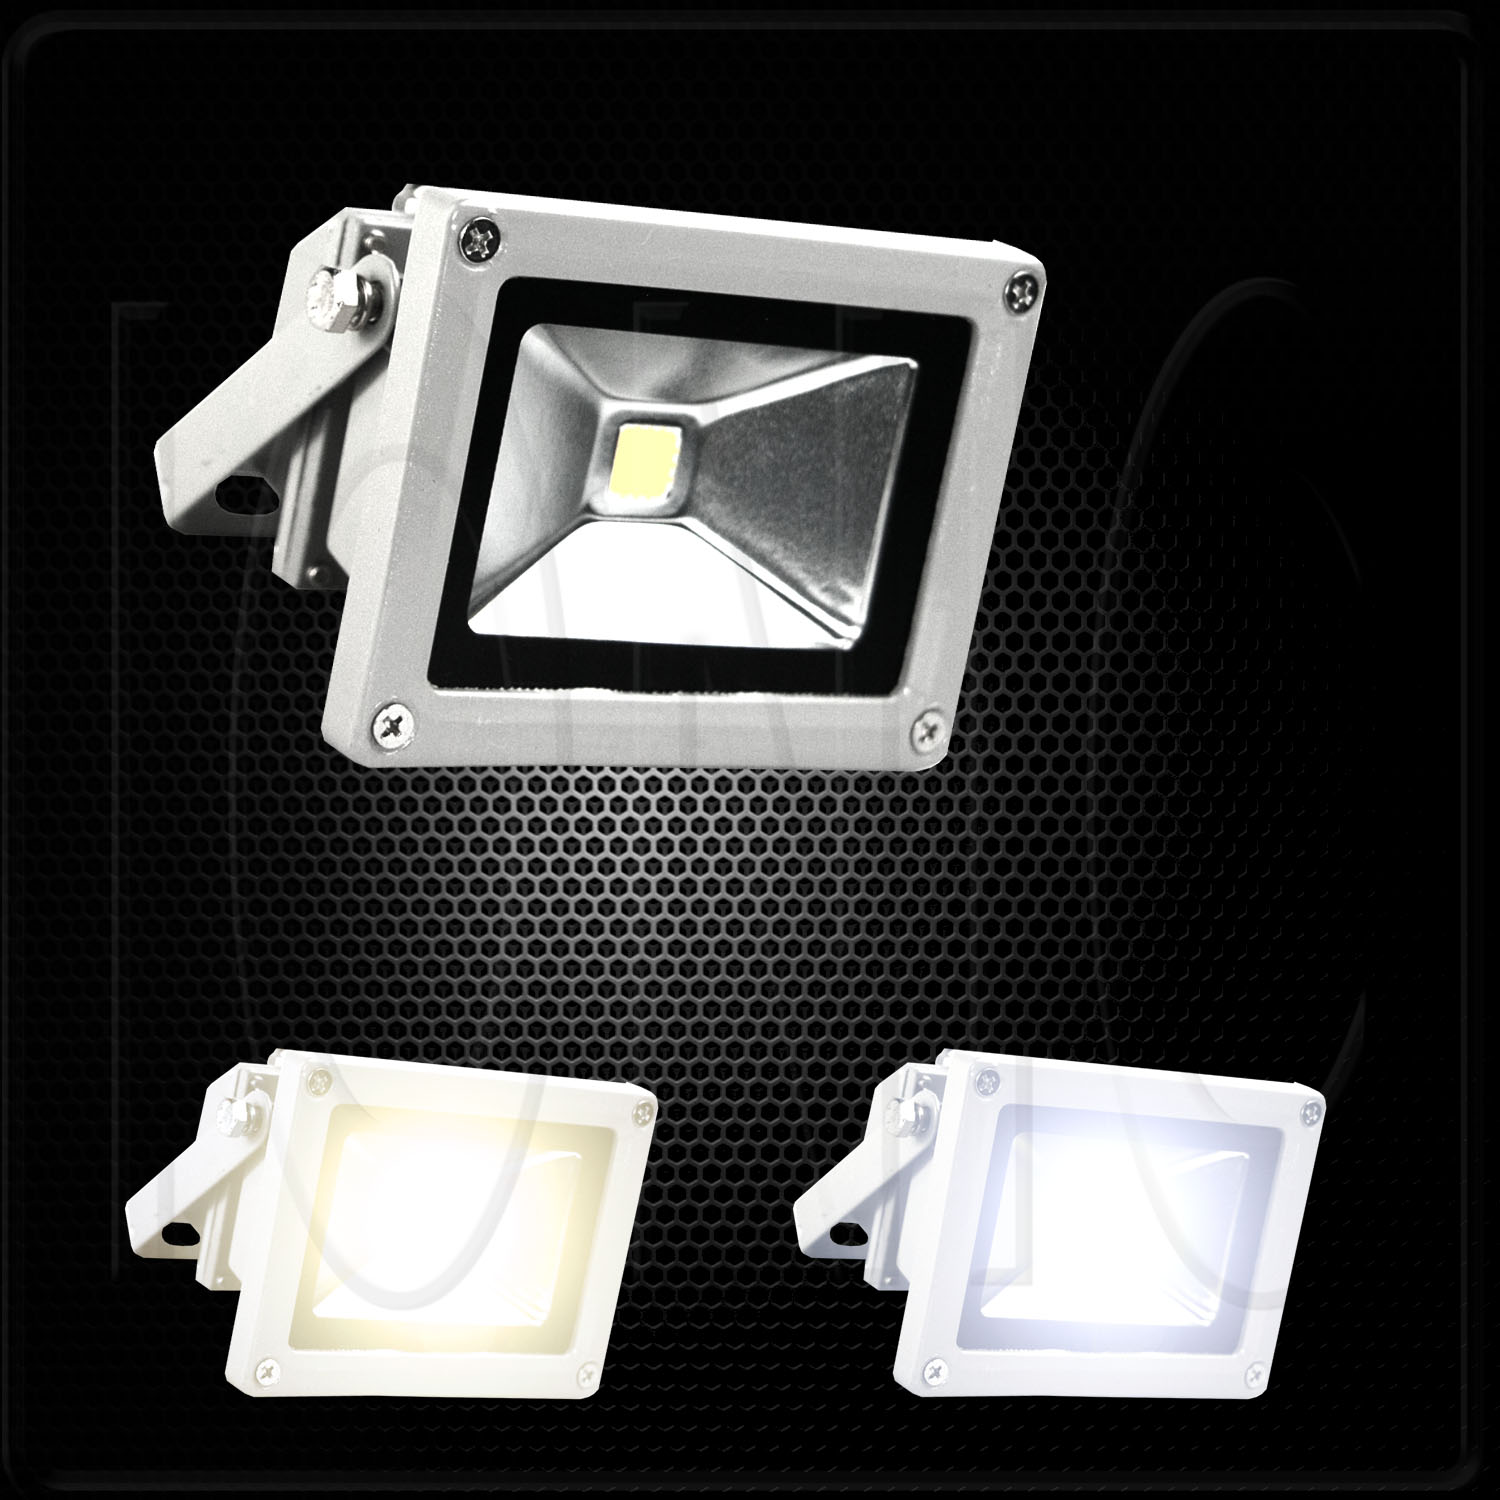 10w 120v led flood light day outdoor landscape garden lamp for 120v landscape lighting